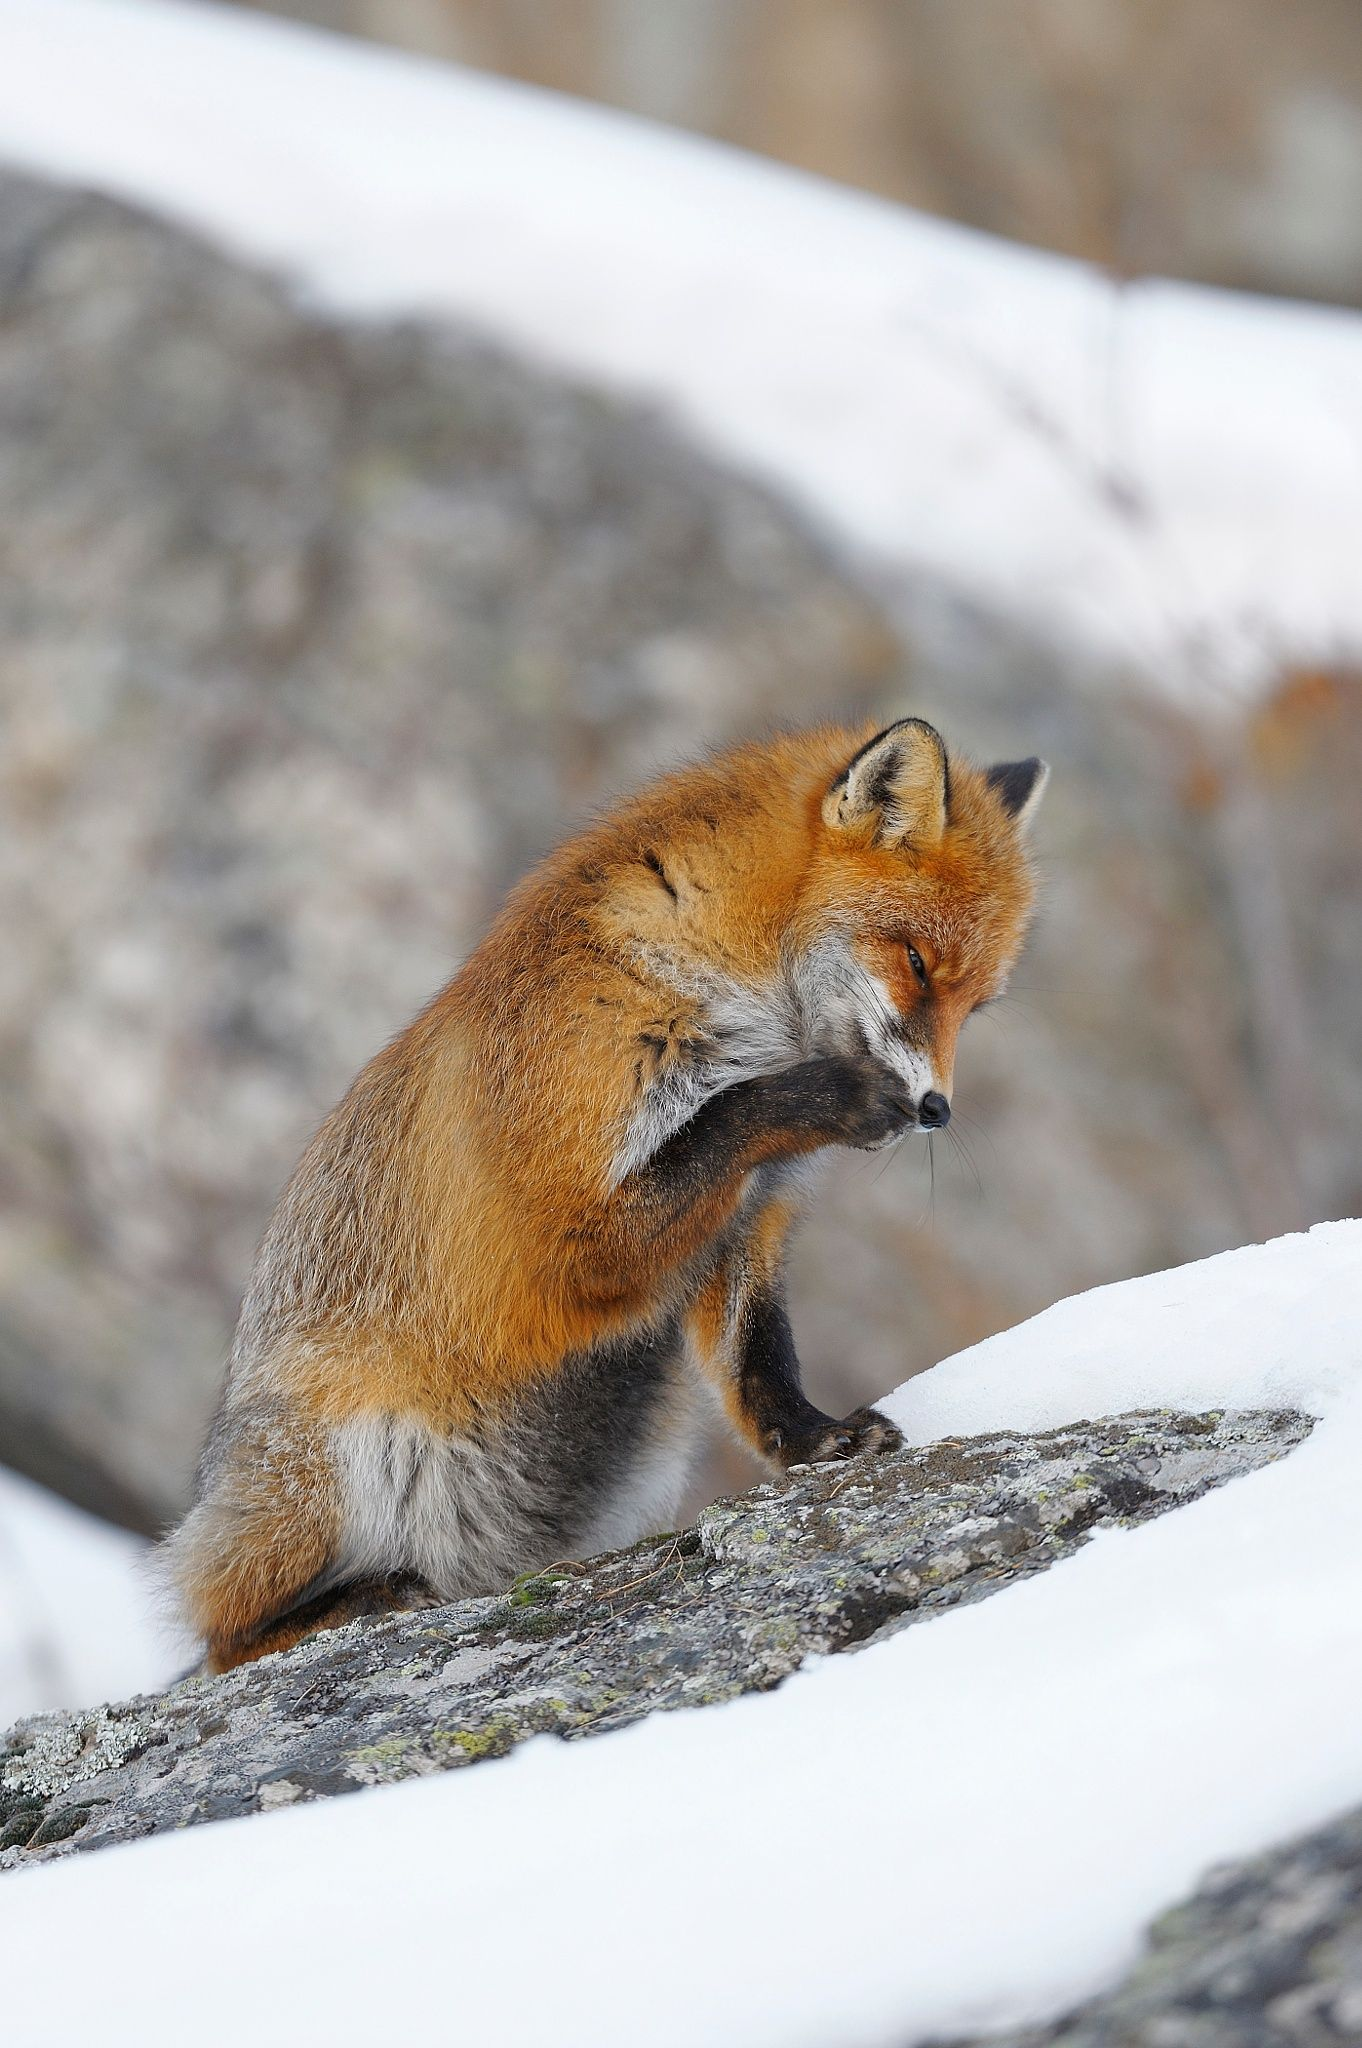 Red Fox by Radius Images - Michael Breuer on 500px